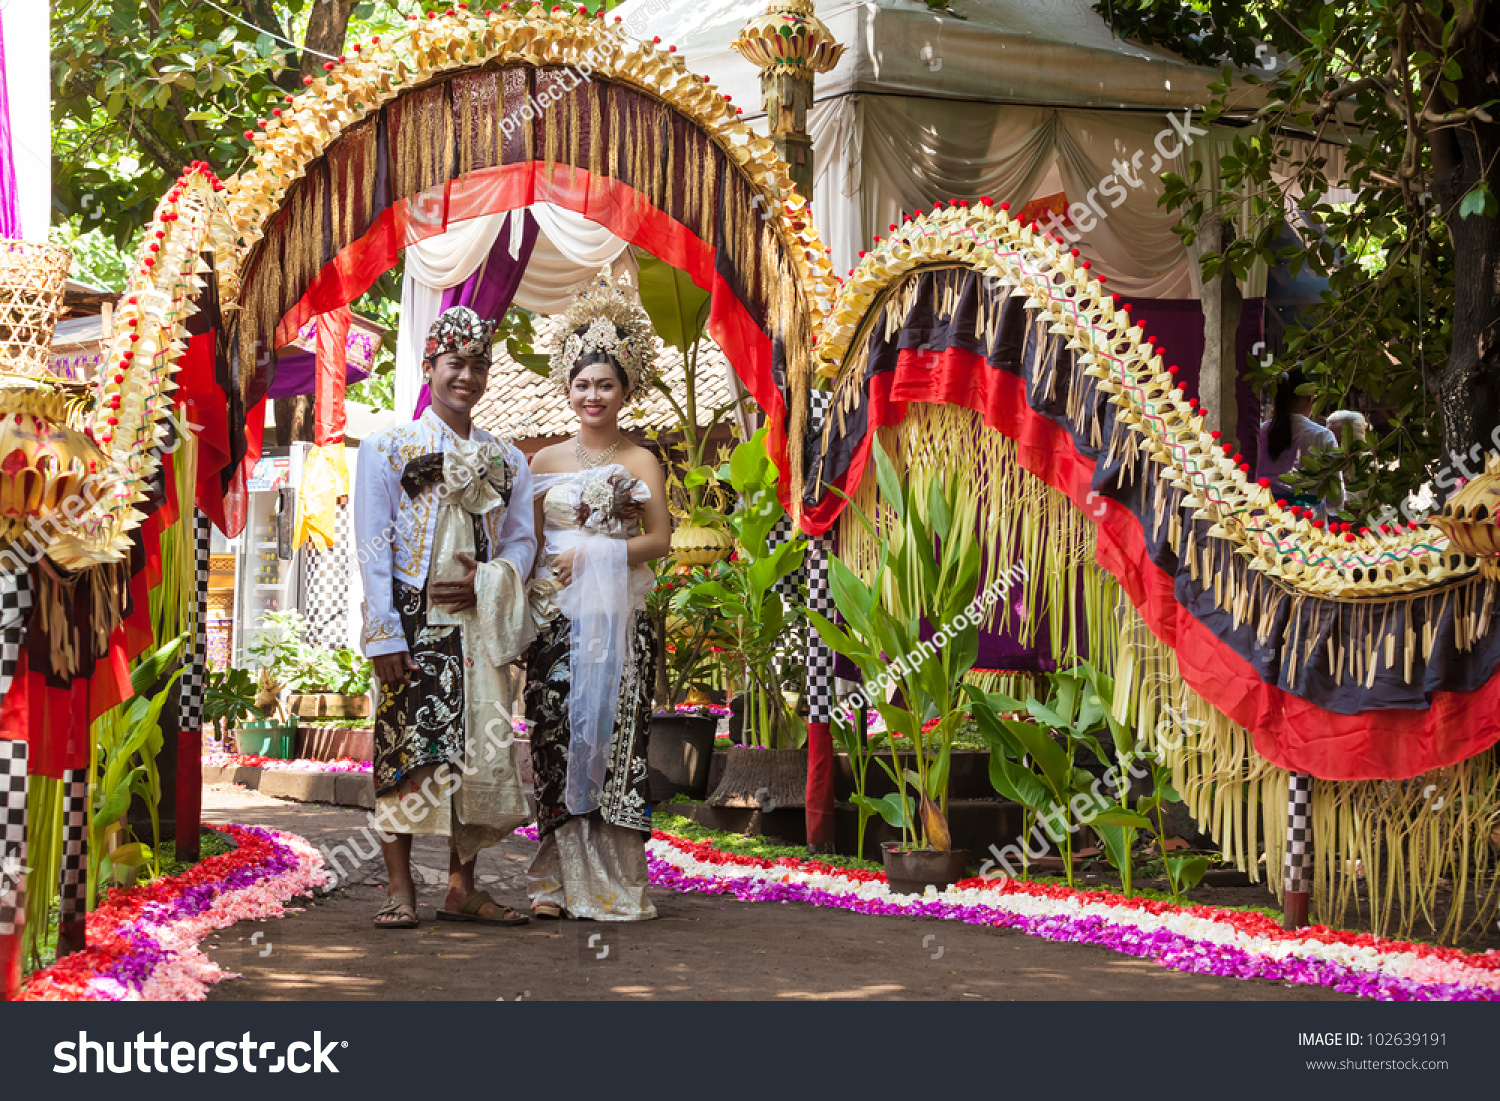 Bali february 11 couple enacting wedding stock photo 100 legal bali february 11 couple enacting wedding scene in preparation for religious ceremony on february junglespirit Images